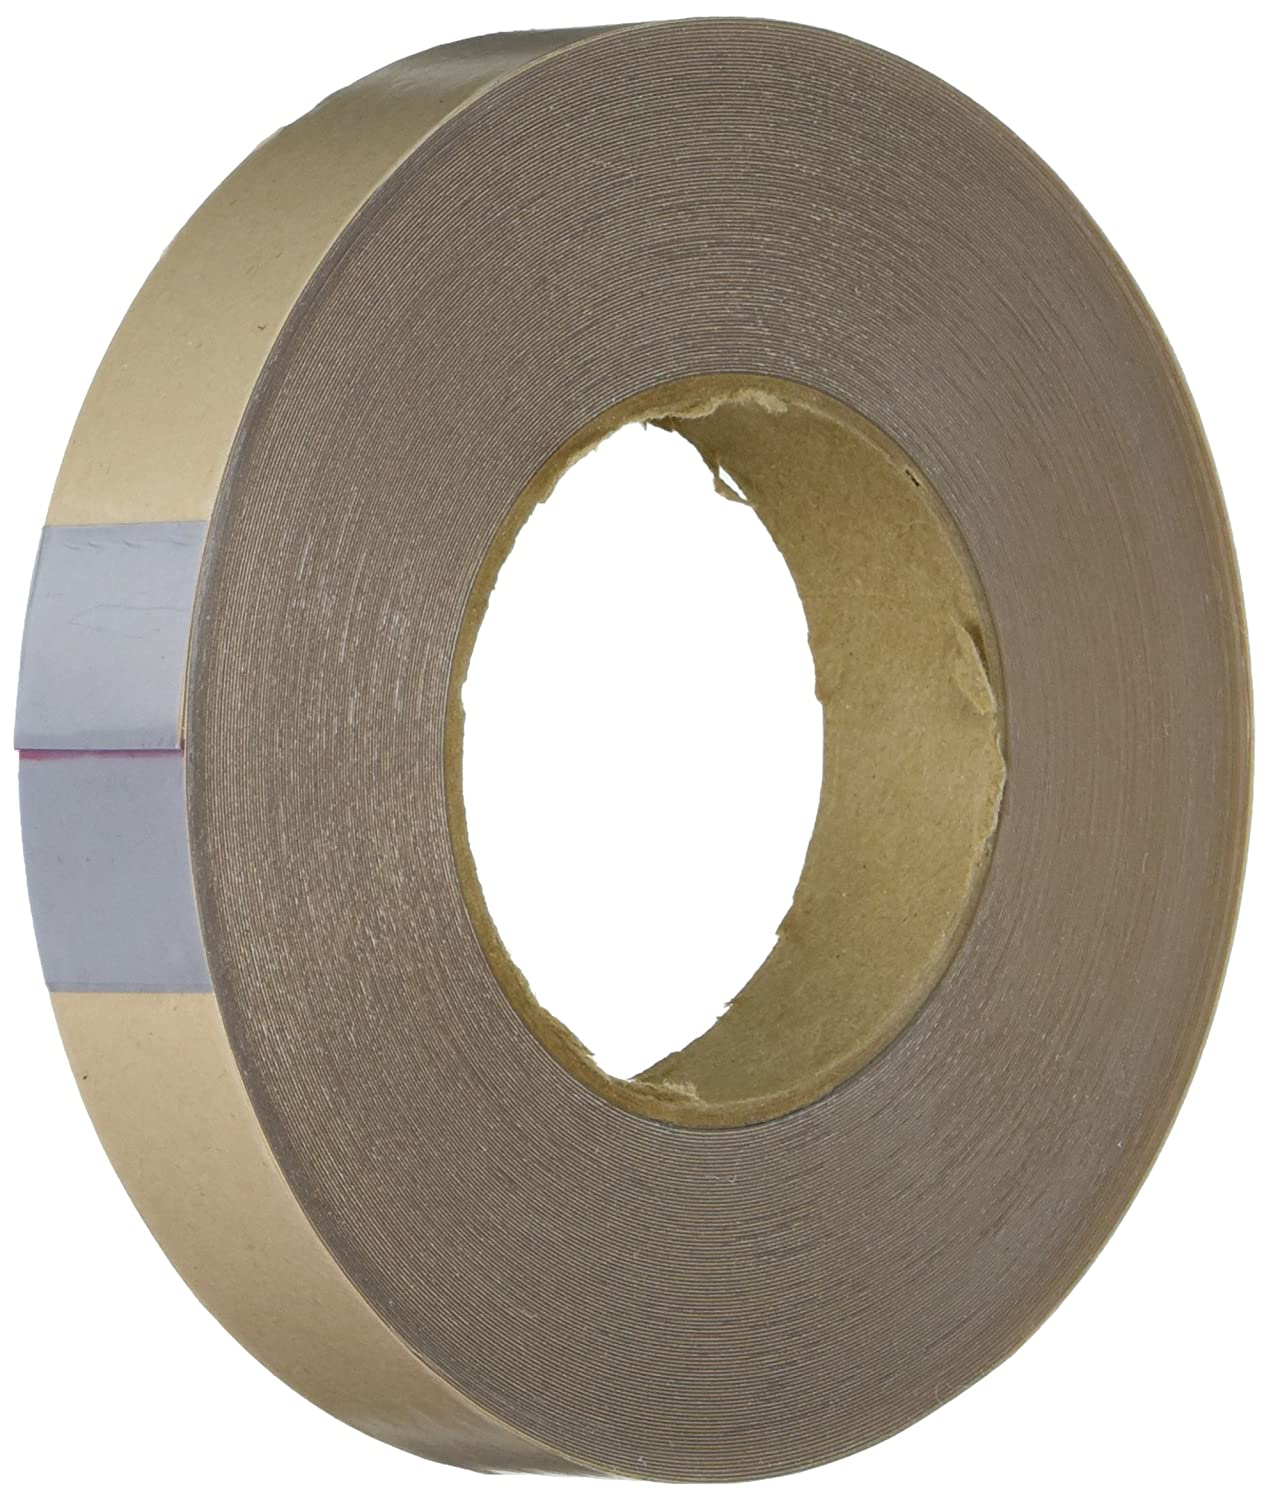 CS Hyde 19-5R UHMW .005 Mil Tape 5 Max 59% OFF ☆ very popular Y Rubber Adhesive with x 1